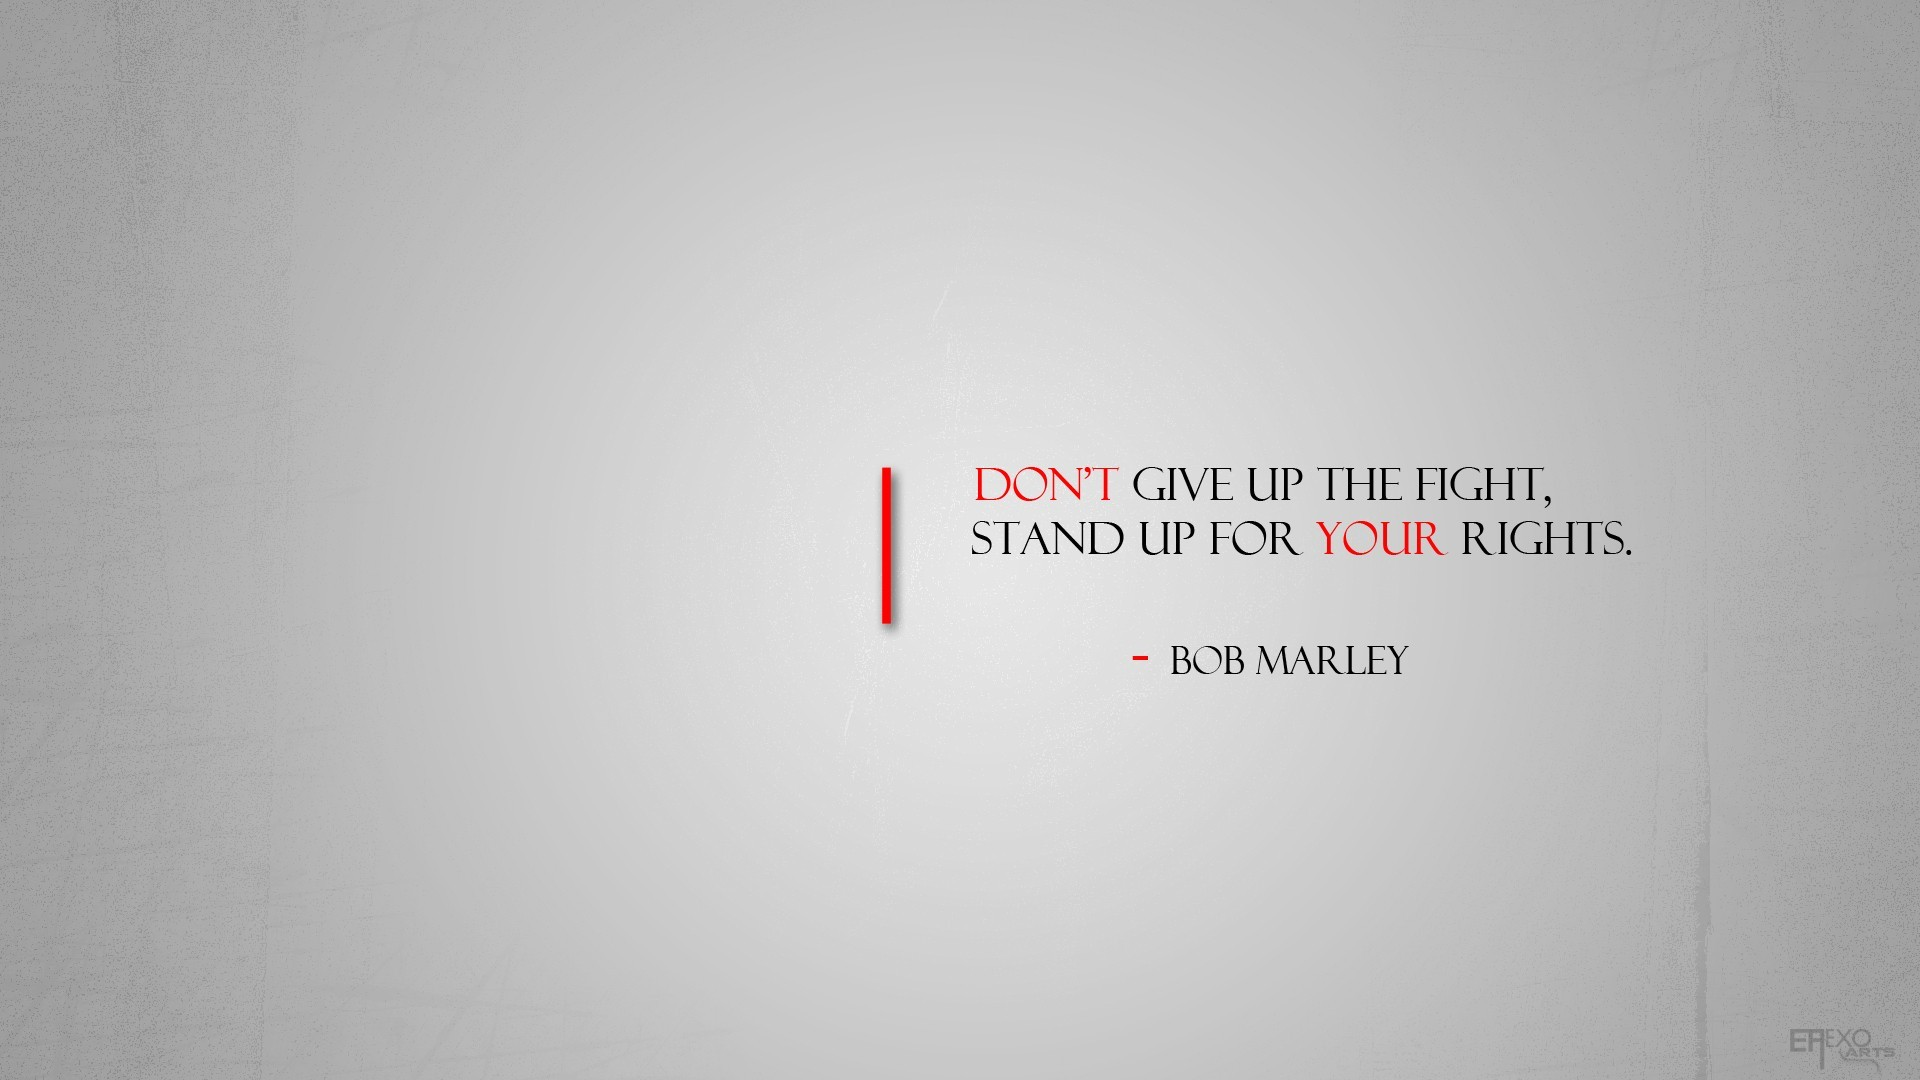 quote wallpaper ·① download free hd wallpapers for desktop and